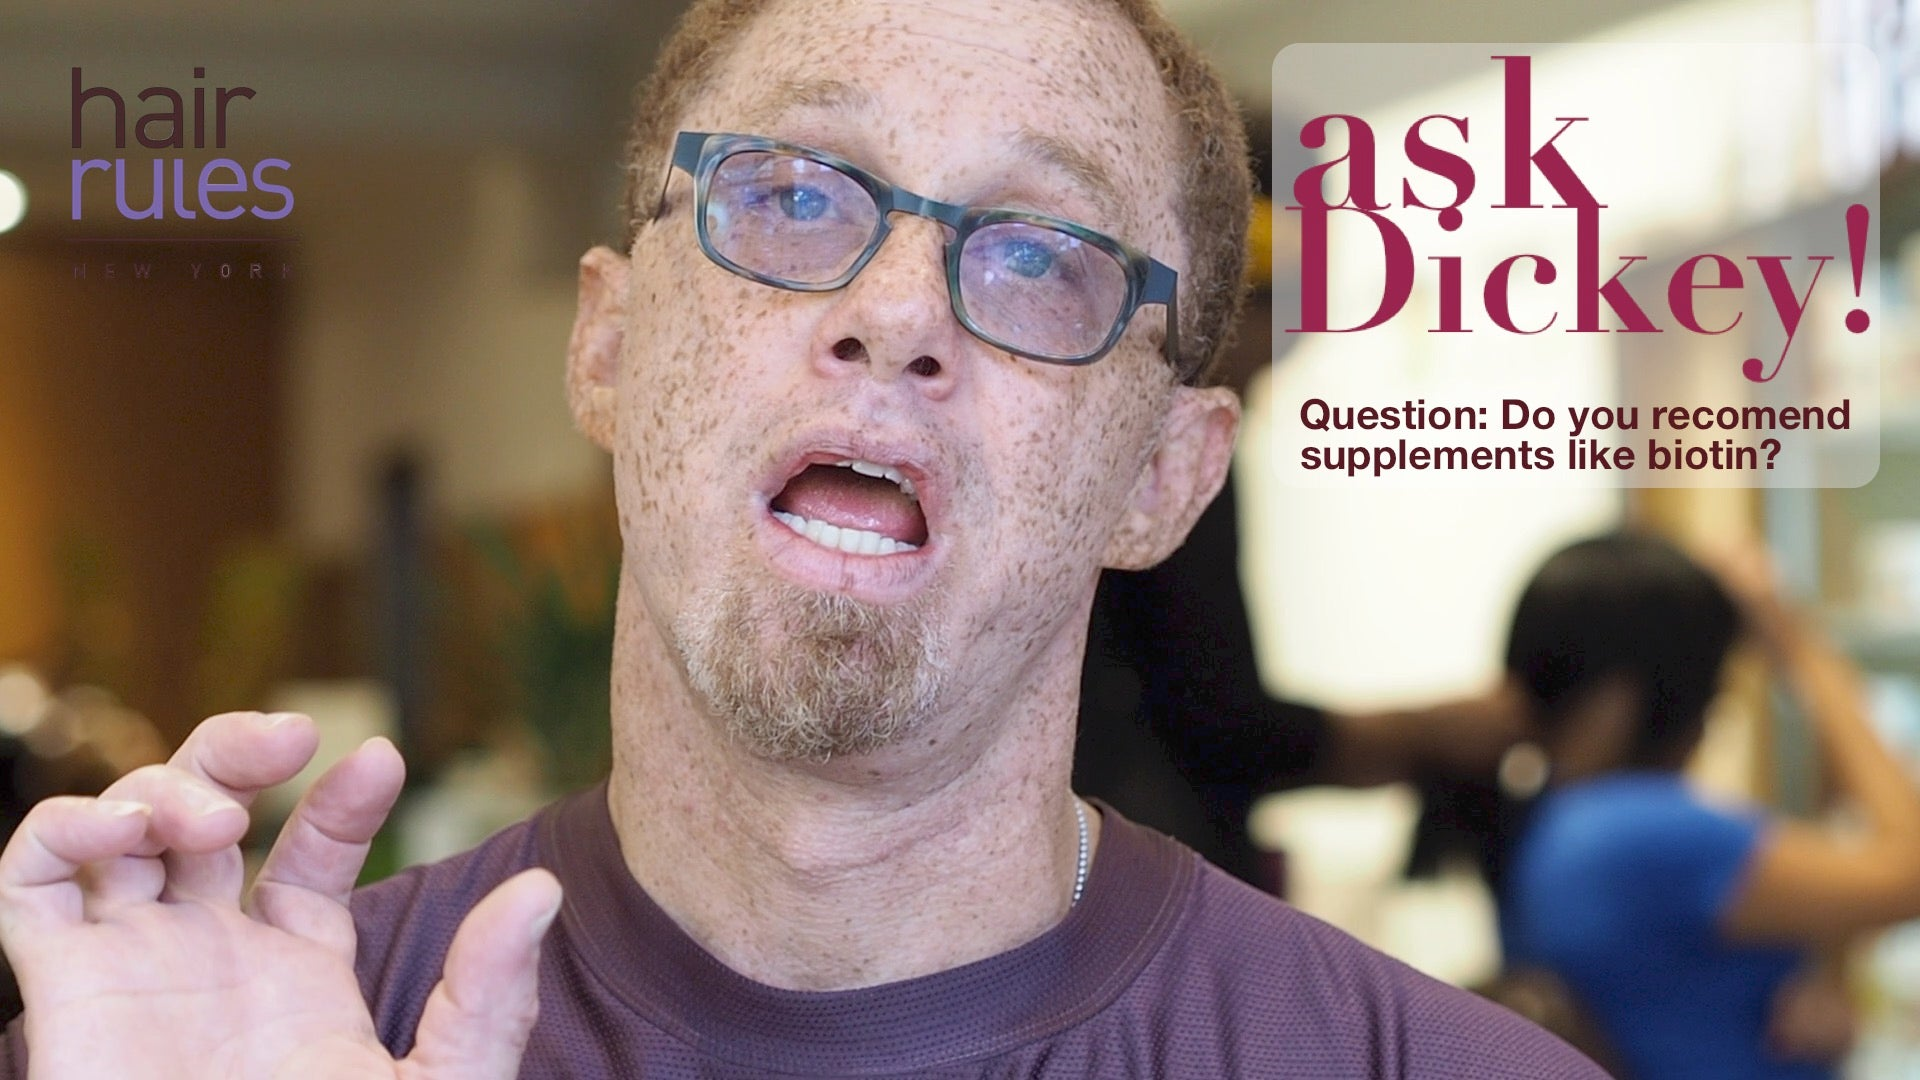 Ask Dickey! Episode 9: Do You Recommend Biotin?